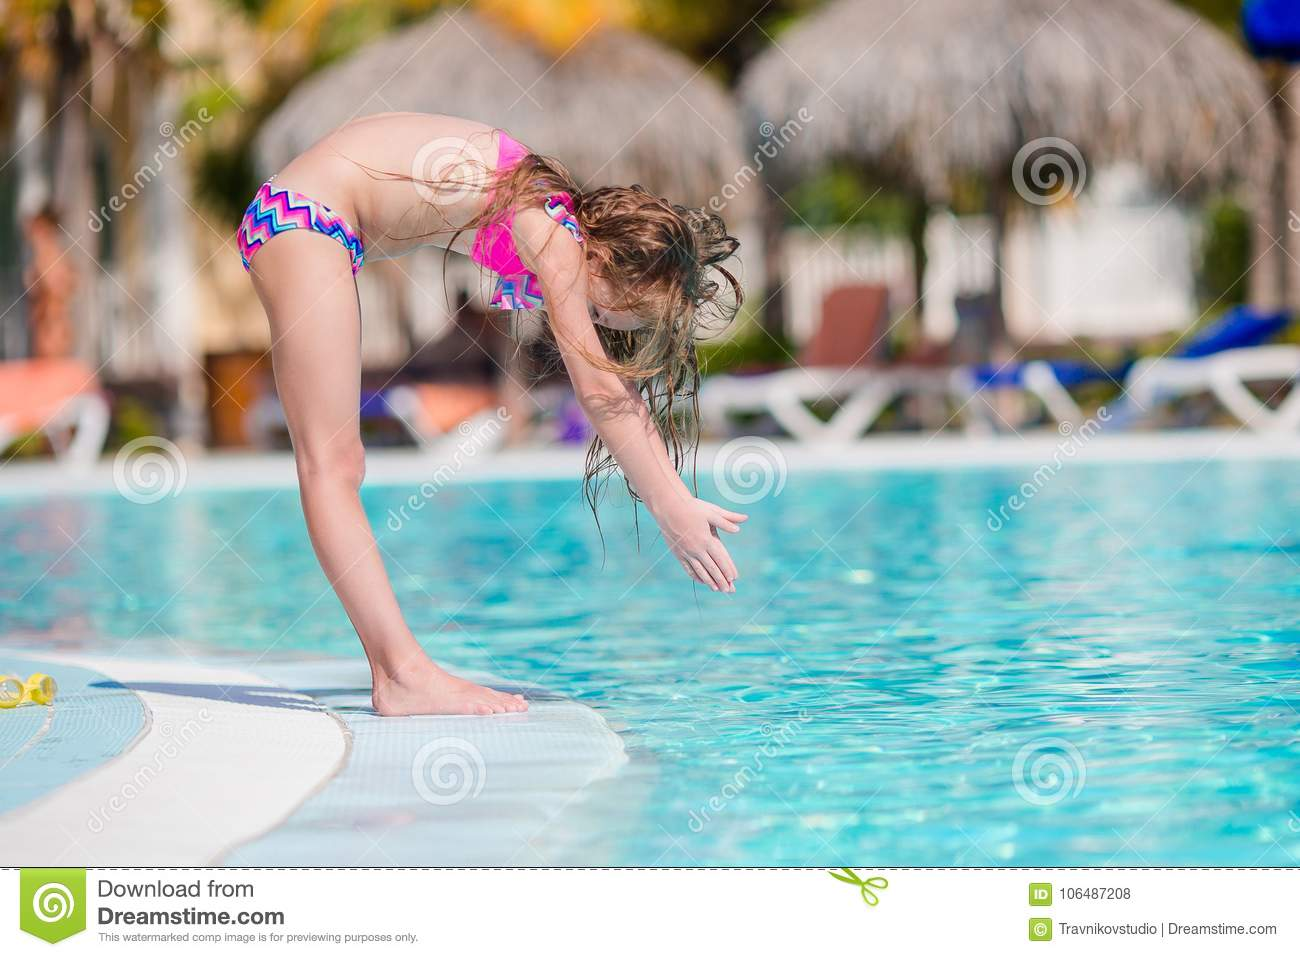 Care Möbelhaus Little Active Adorable Girl In Outdoor Swimming Pool Ready To Swim